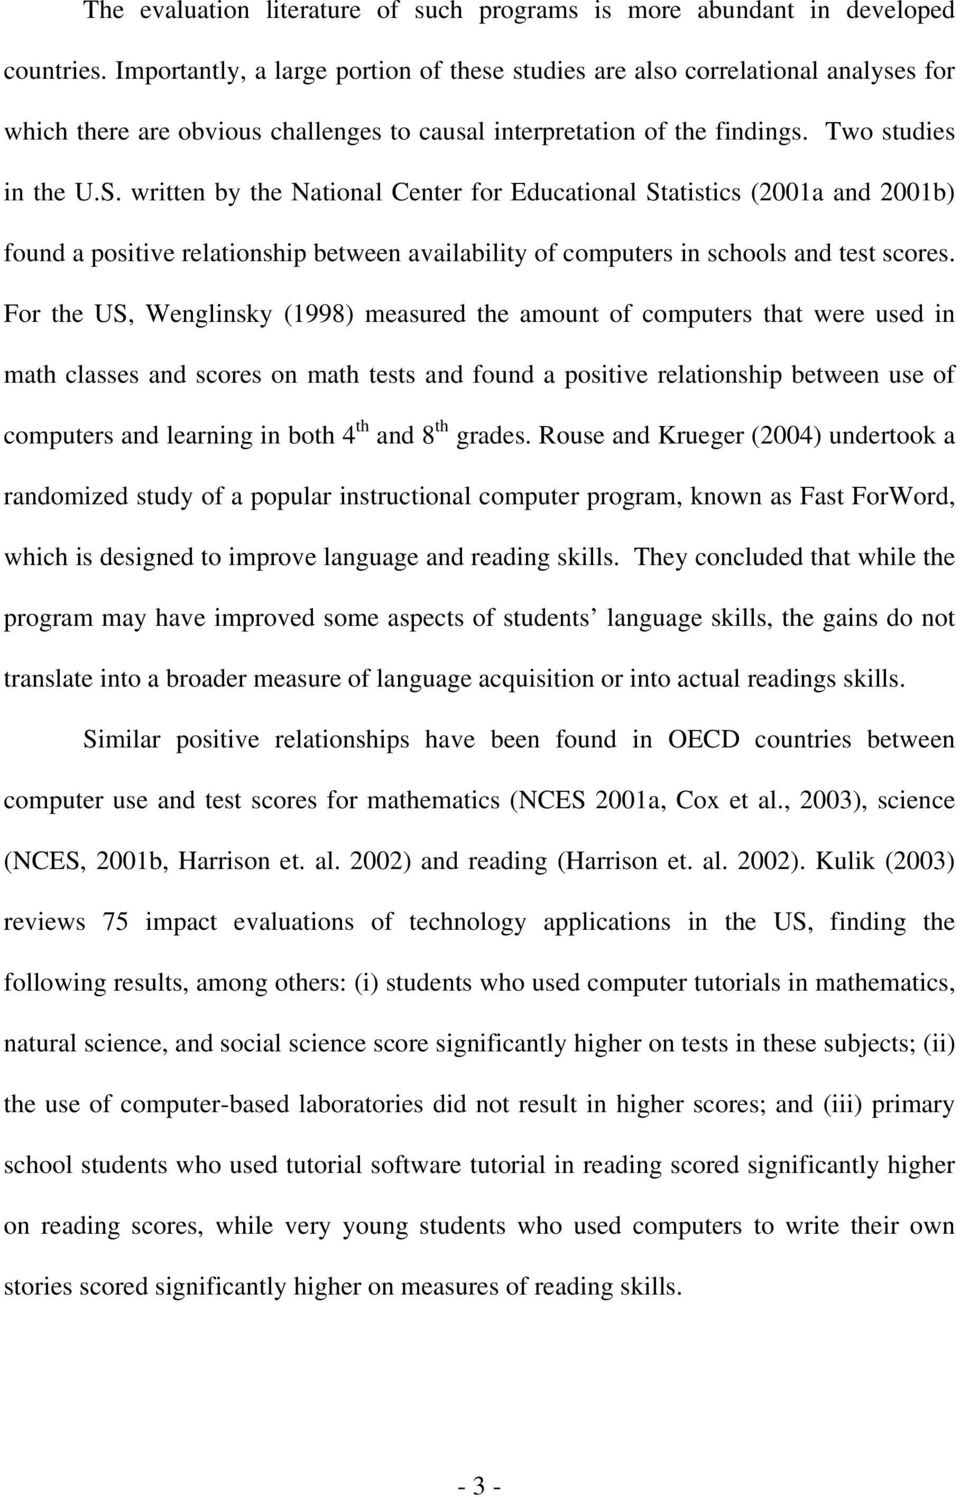 written by the National Center for Educational Statistics (2001a and 2001b) found a positive relationship between availability of computers in schools and test scores.